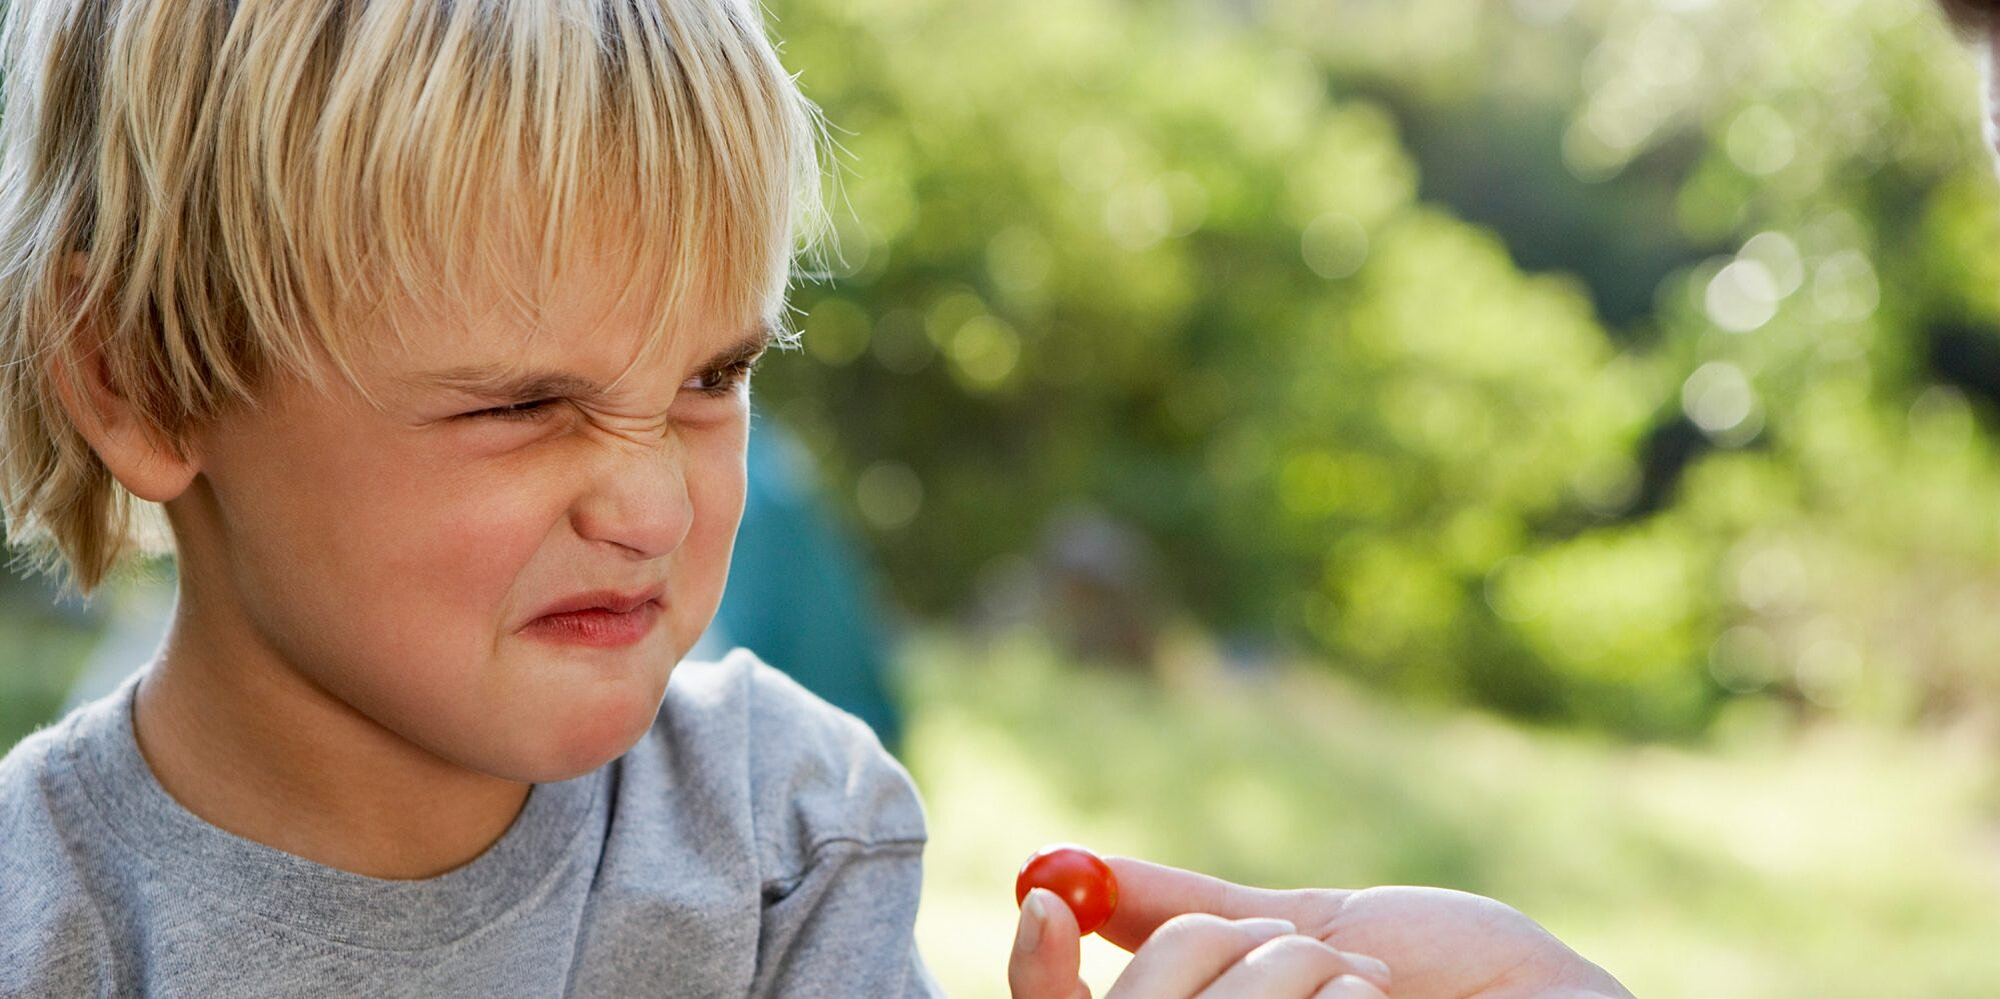 4 tips for convincing picky eaters to try new foods